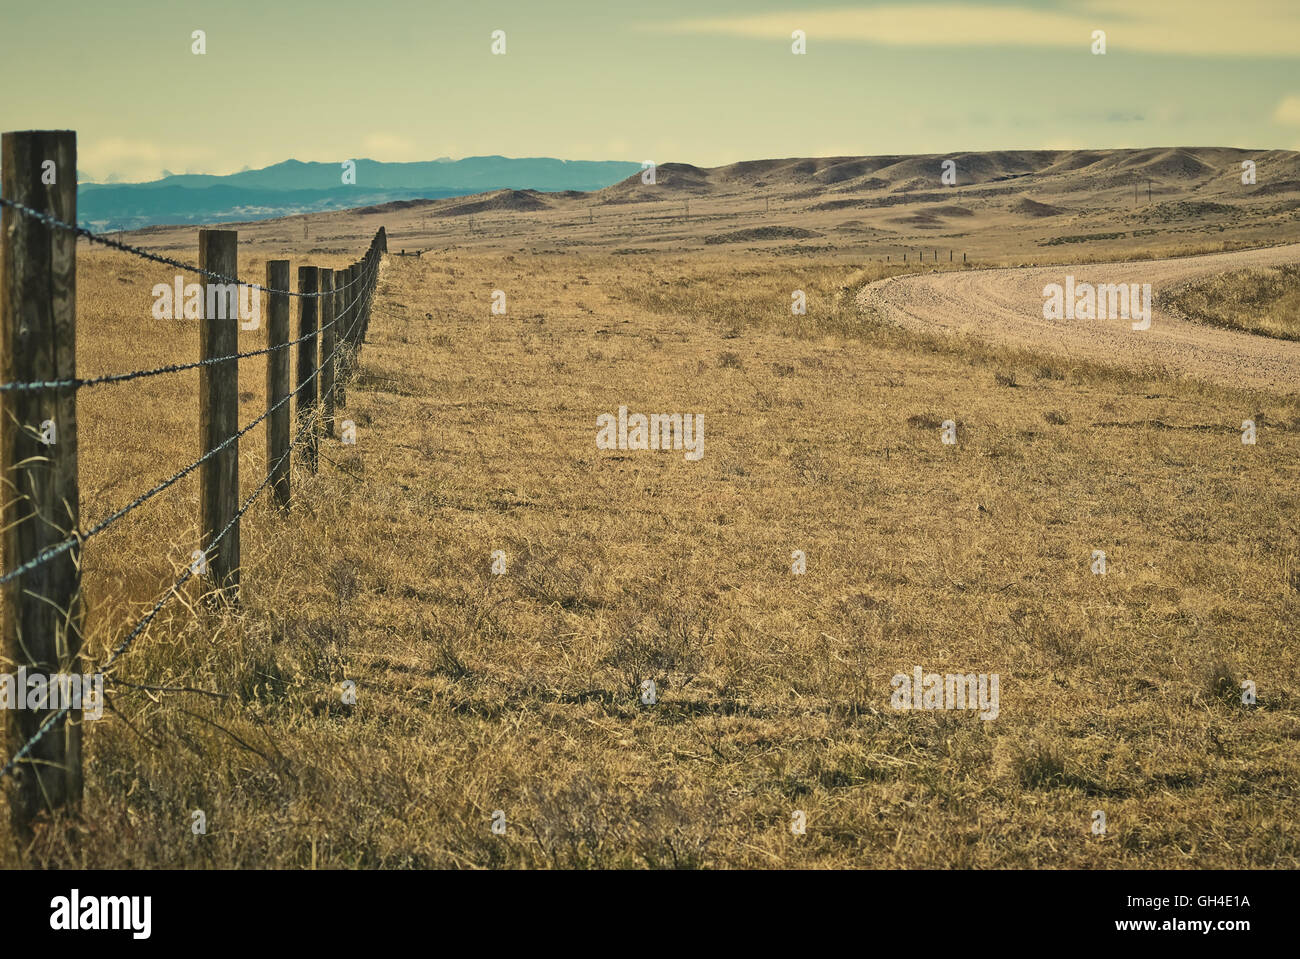 Outside drift fence to keep cattle contained on the open range in northern Colorado, USA. Retro instagram look. - Stock Image